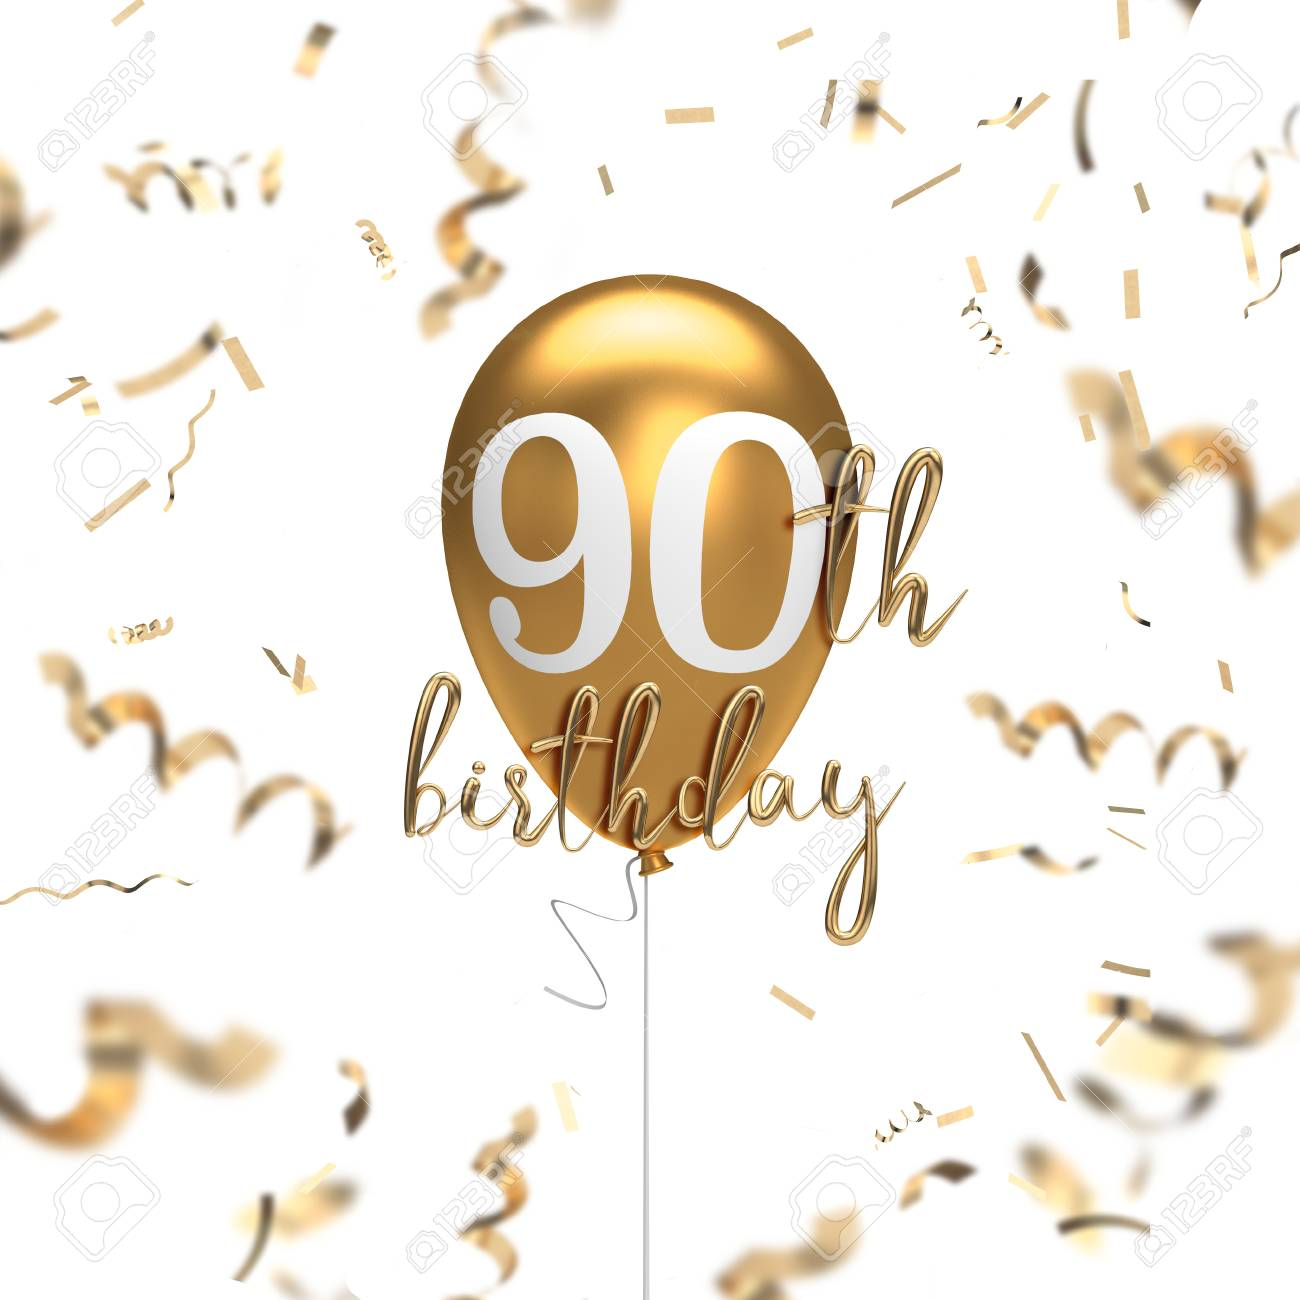 Happy 90th Birthday Gold Balloon Greeting Background 3D Rendering Stock Photo